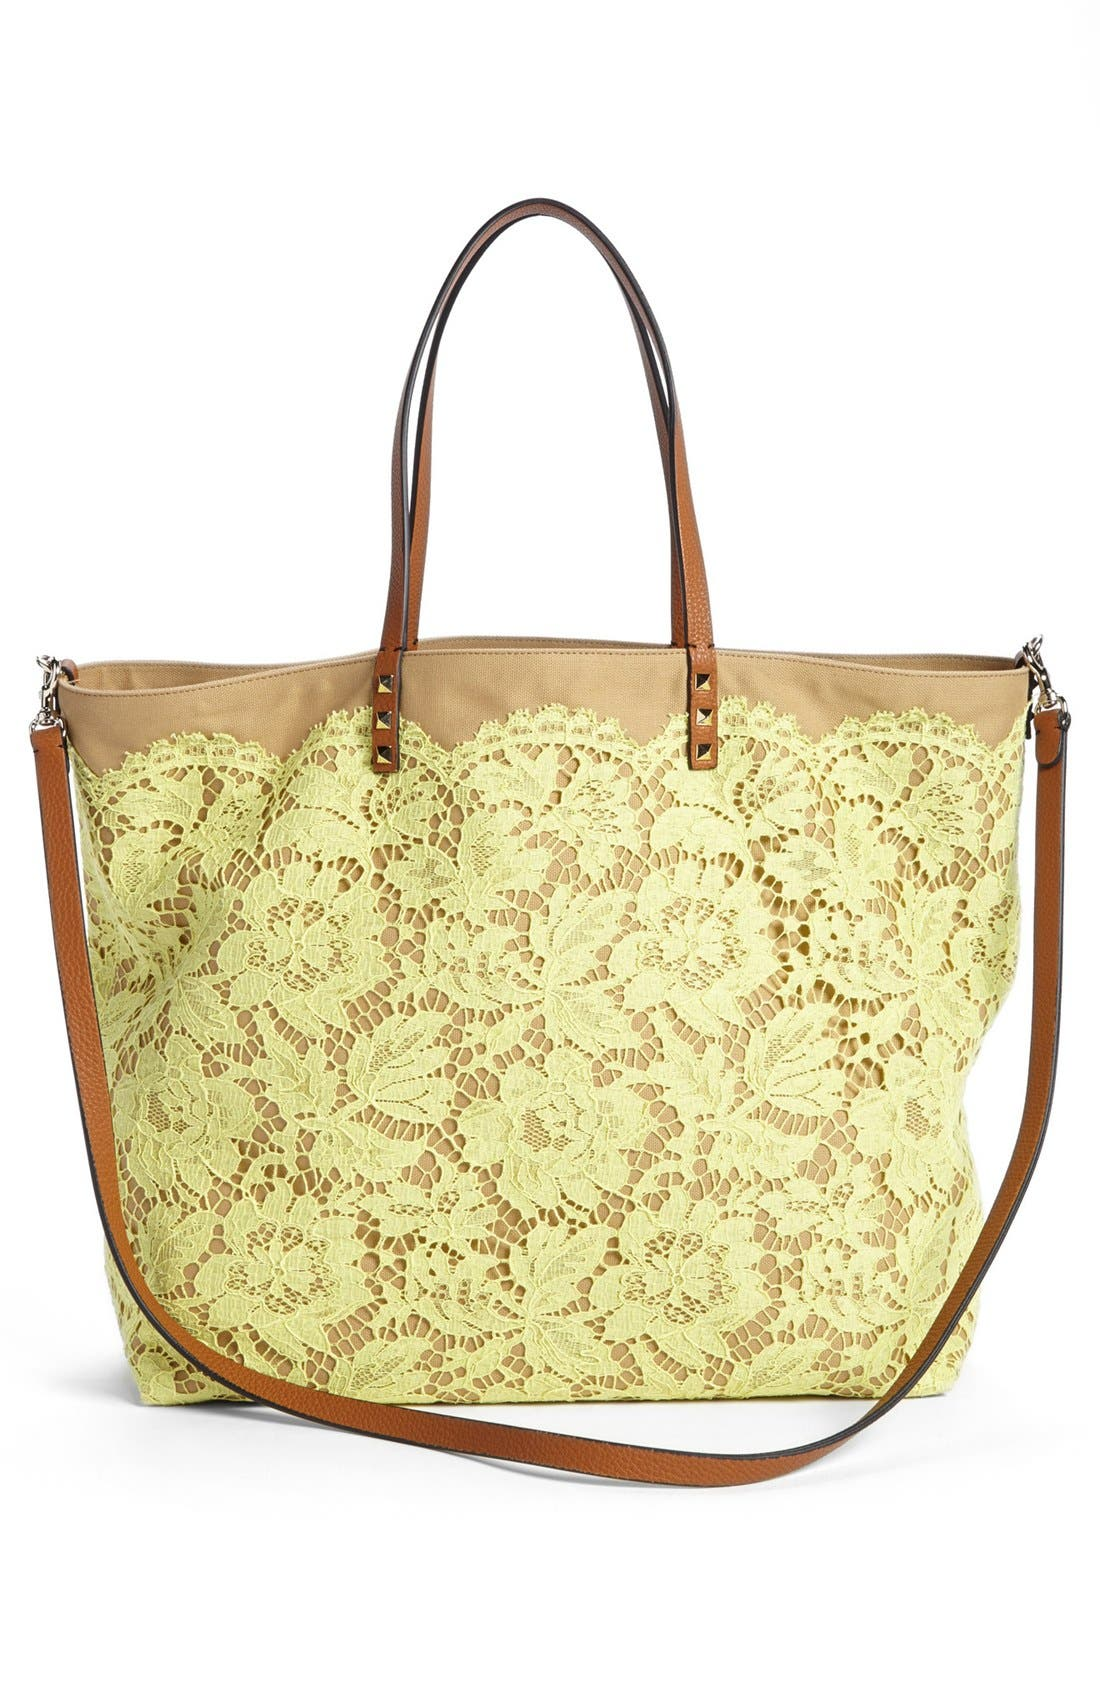 Main Image - Valentino 'Glam' Reversible Lace Tote